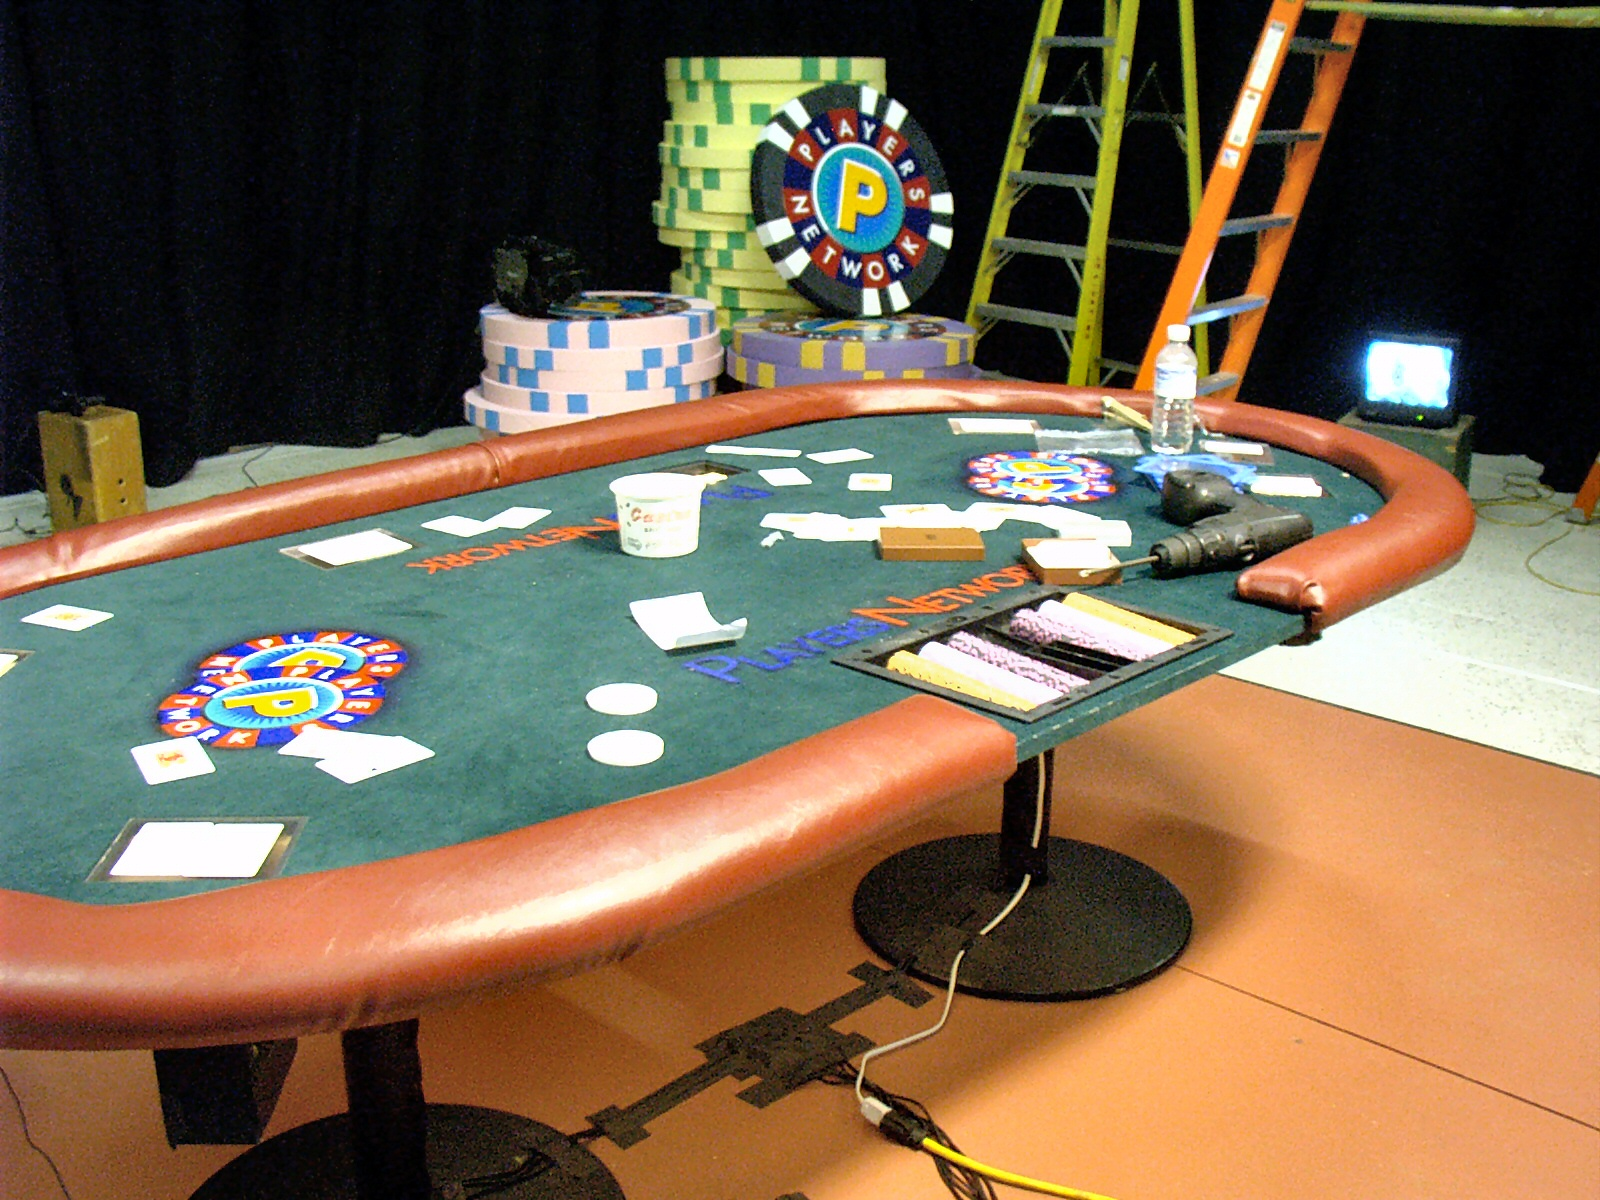 The shows poker table during stage construction note the bundle of video and power